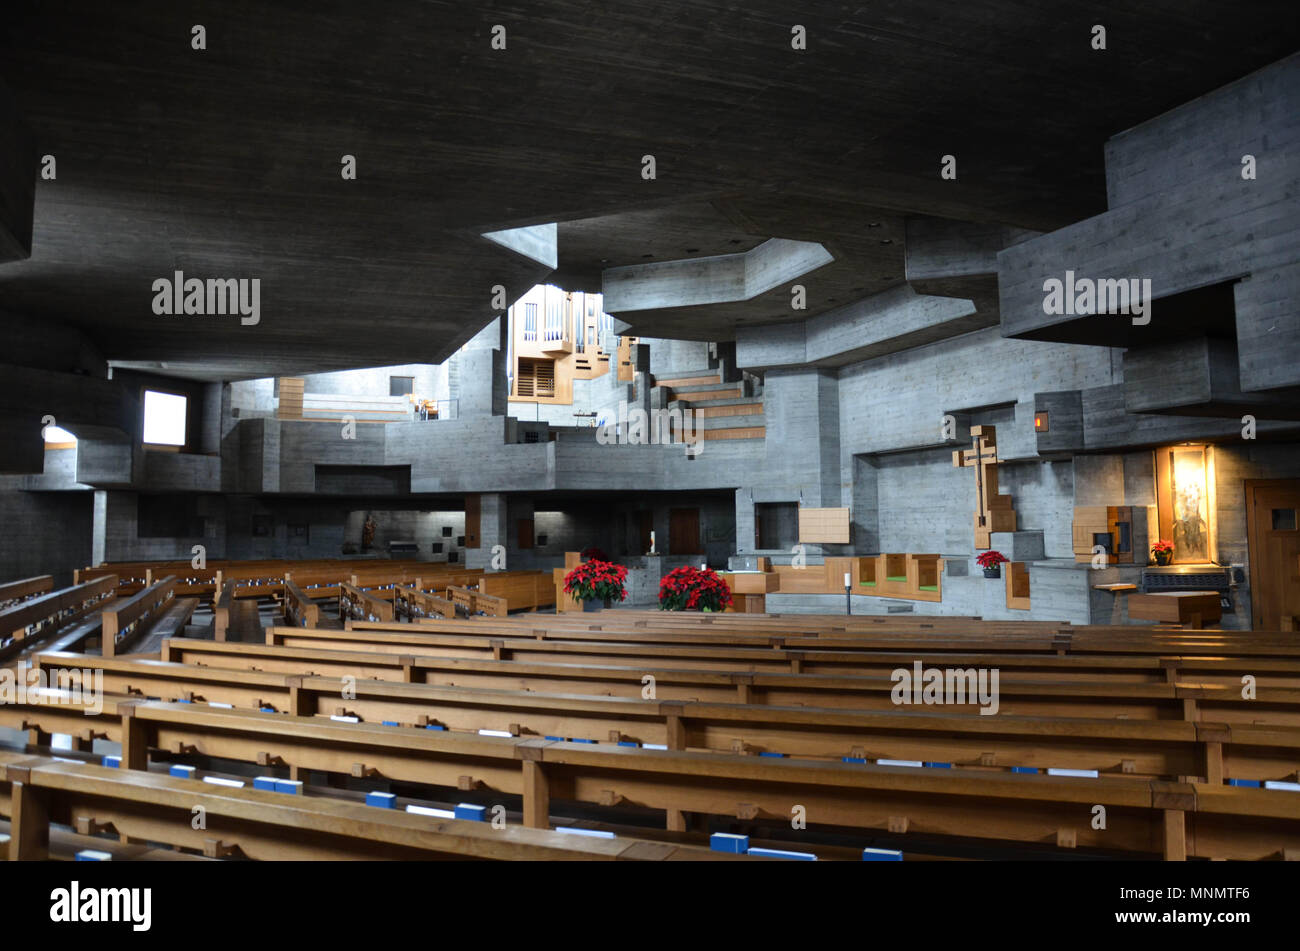 Holy Cross Church (Heiligkreuzkirche), designed by architect Walter Förderer, completed 1969, Chur, Grisons canton, Switzerland, January 2018 - Stock Image